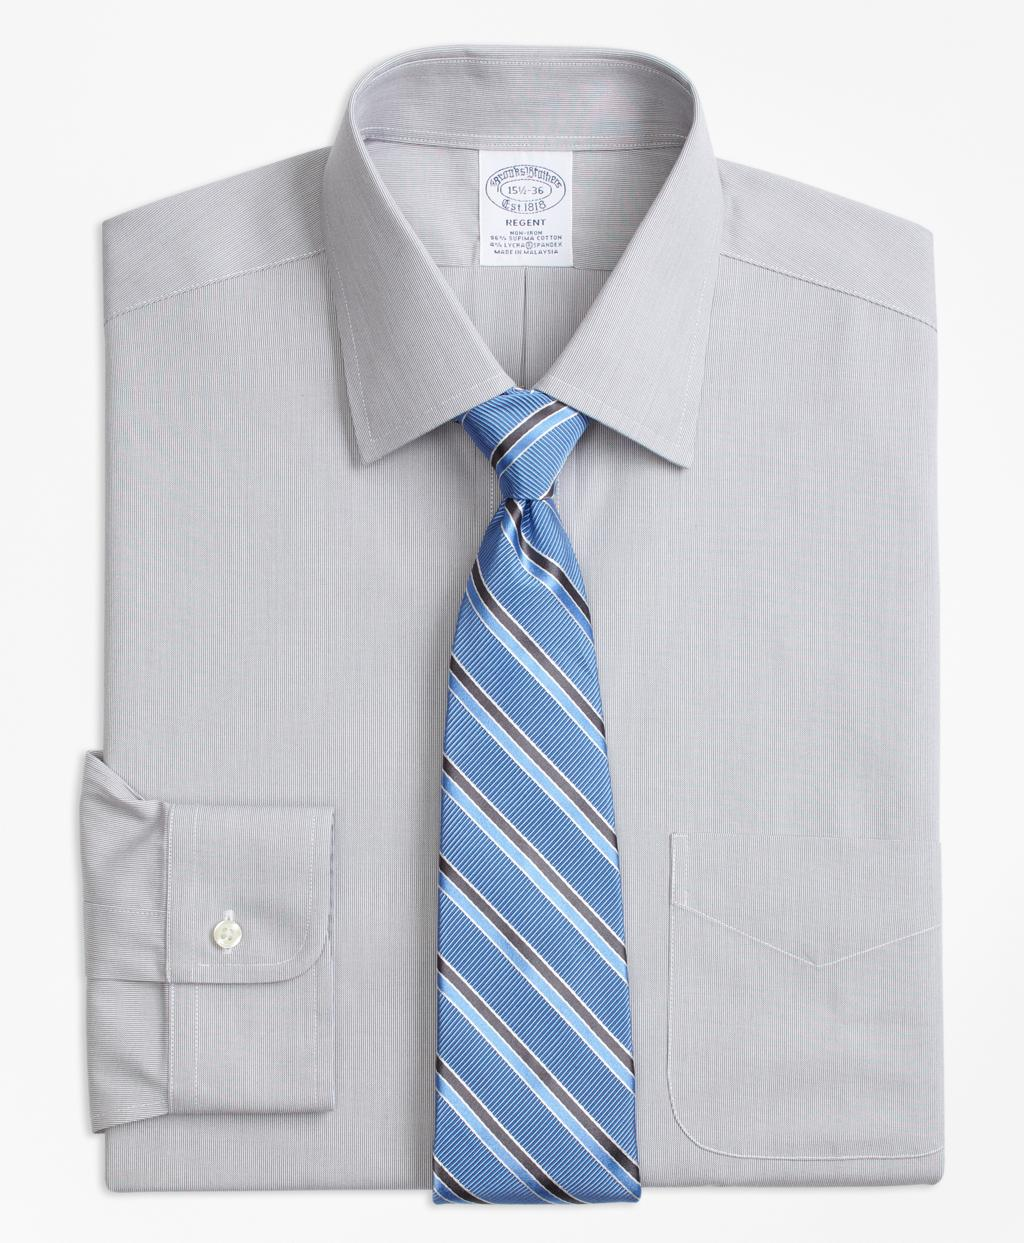 Brooks brothers stretch regent fitted dress shirt non for How to stretch a dress shirt